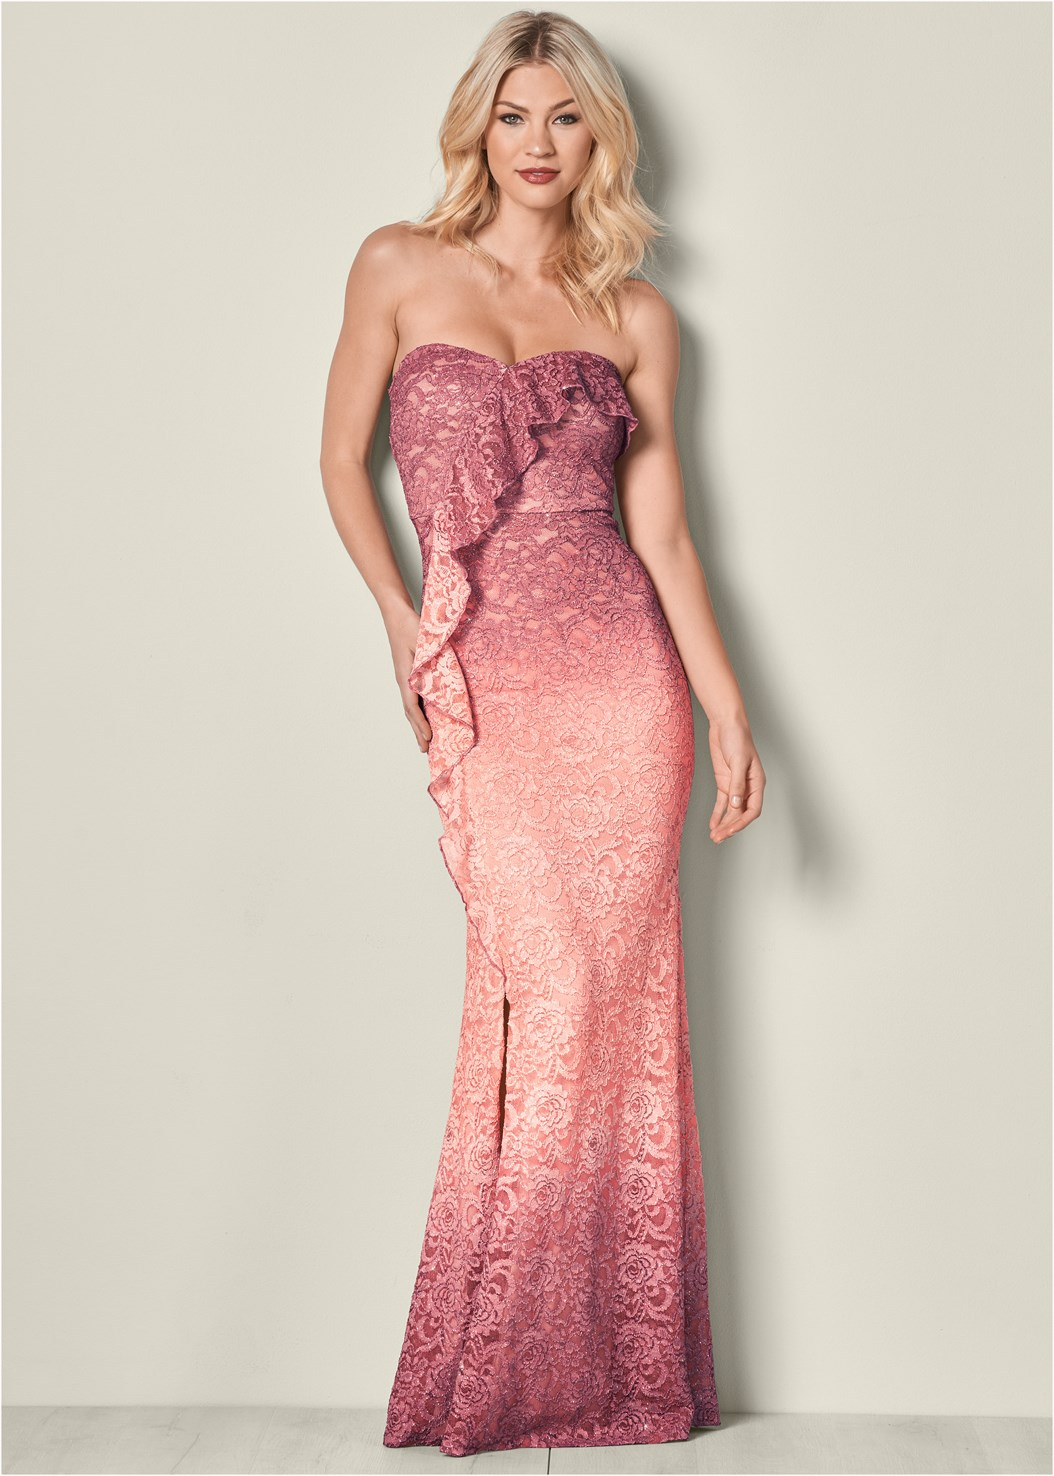 Ombre Glitter Long Dress,High Heel Strappy Sandals